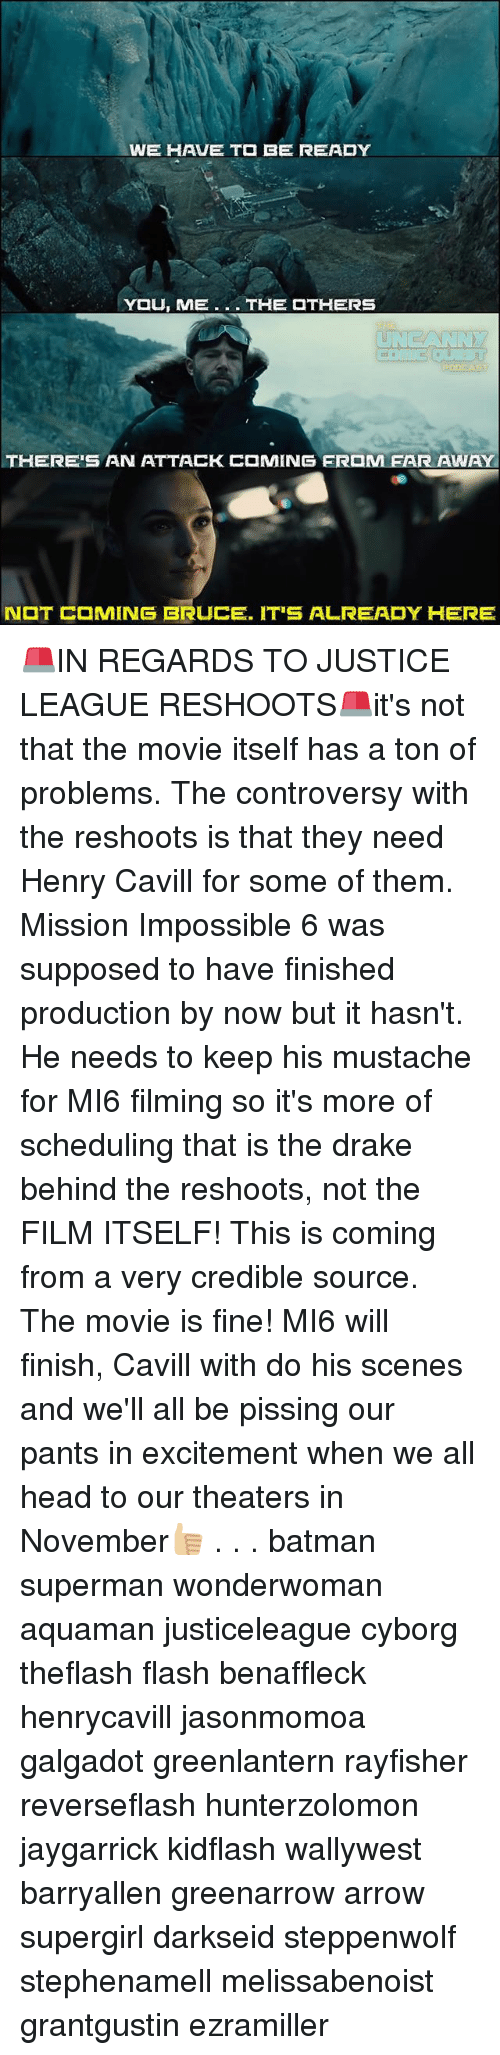 Batman, Drake, and Head: WE HAVE T  BE READY  THERE'S AN ATTACK  MING FR M FAR AWAY  N  T C MING BRUCE. IT'S ALREADY HERE 🚨IN REGARDS TO JUSTICE LEAGUE RESHOOTS🚨it's not that the movie itself has a ton of problems. The controversy with the reshoots is that they need Henry Cavill for some of them. Mission Impossible 6 was supposed to have finished production by now but it hasn't. He needs to keep his mustache for MI6 filming so it's more of scheduling that is the drake behind the reshoots, not the FILM ITSELF! This is coming from a very credible source. The movie is fine! MI6 will finish, Cavill with do his scenes and we'll all be pissing our pants in excitement when we all head to our theaters in November👍🏼 . . . batman superman wonderwoman aquaman justiceleague cyborg theflash flash benaffleck henrycavill jasonmomoa galgadot greenlantern rayfisher reverseflash hunterzolomon jaygarrick kidflash wallywest barryallen greenarrow arrow supergirl darkseid steppenwolf stephenamell melissabenoist grantgustin ezramiller